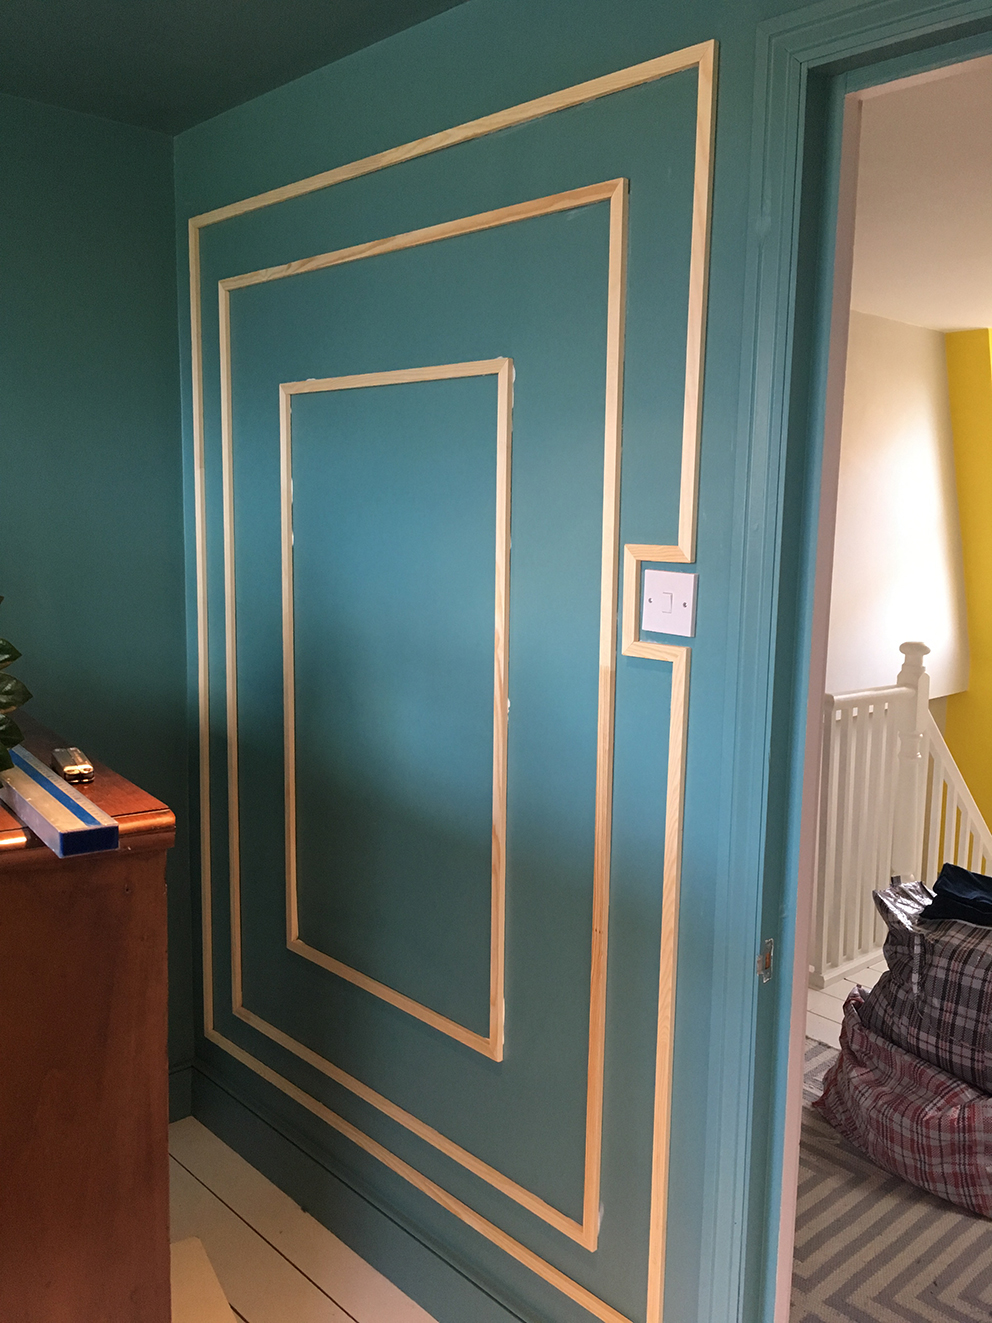 French For Pineapple Blog - Decorative Wall Moulding DIY